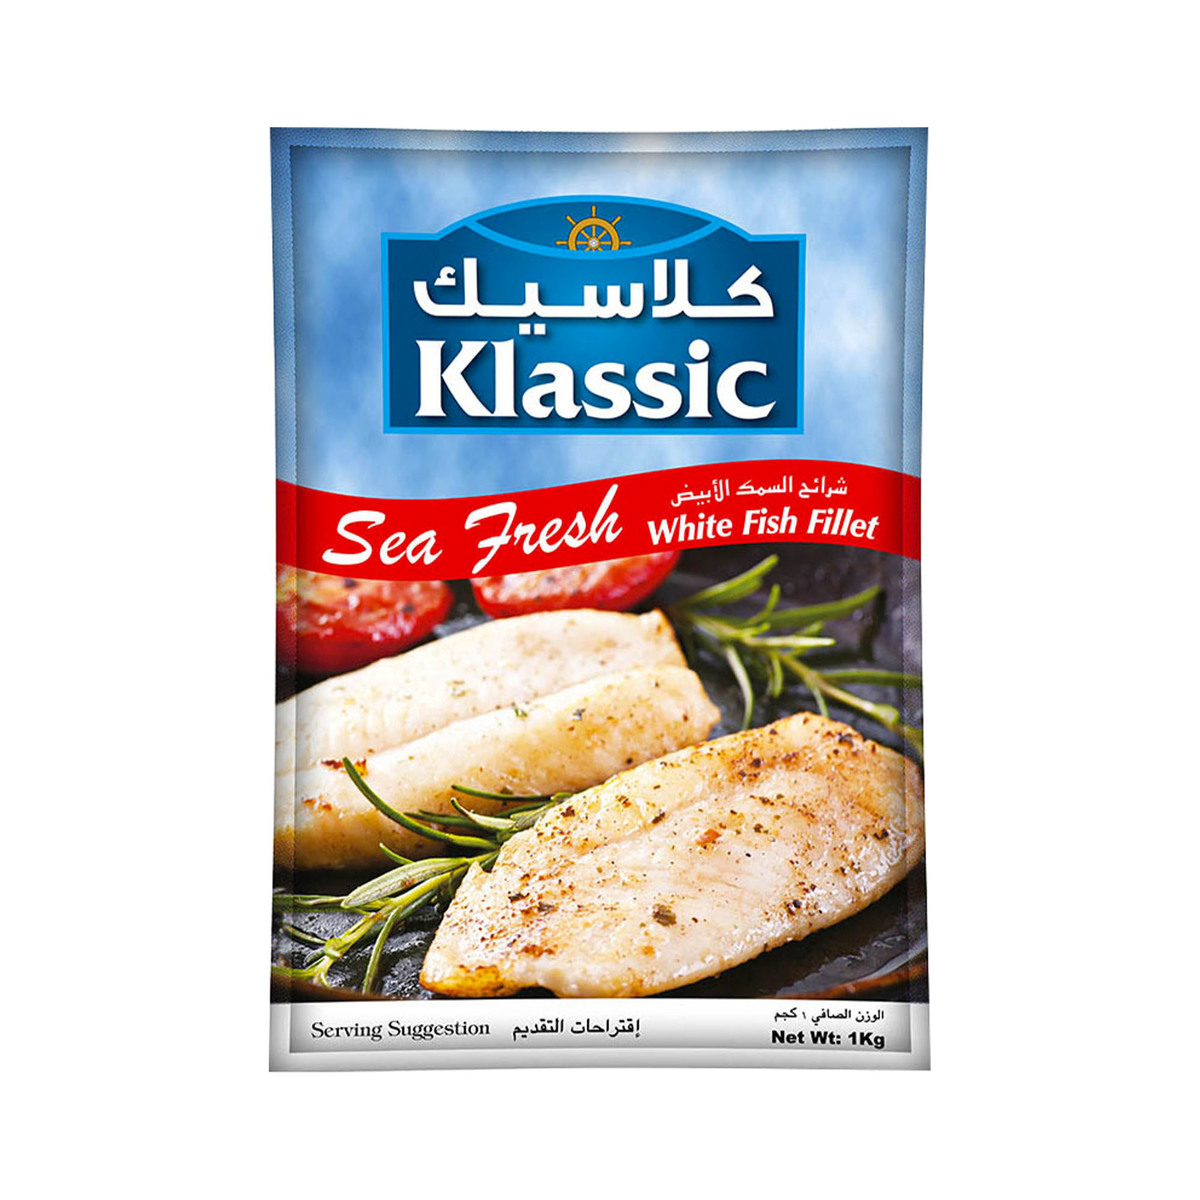 Buy Klassic Sea Fresh White Fish Fillet 1kg Online Lulu Hypermarket Uae